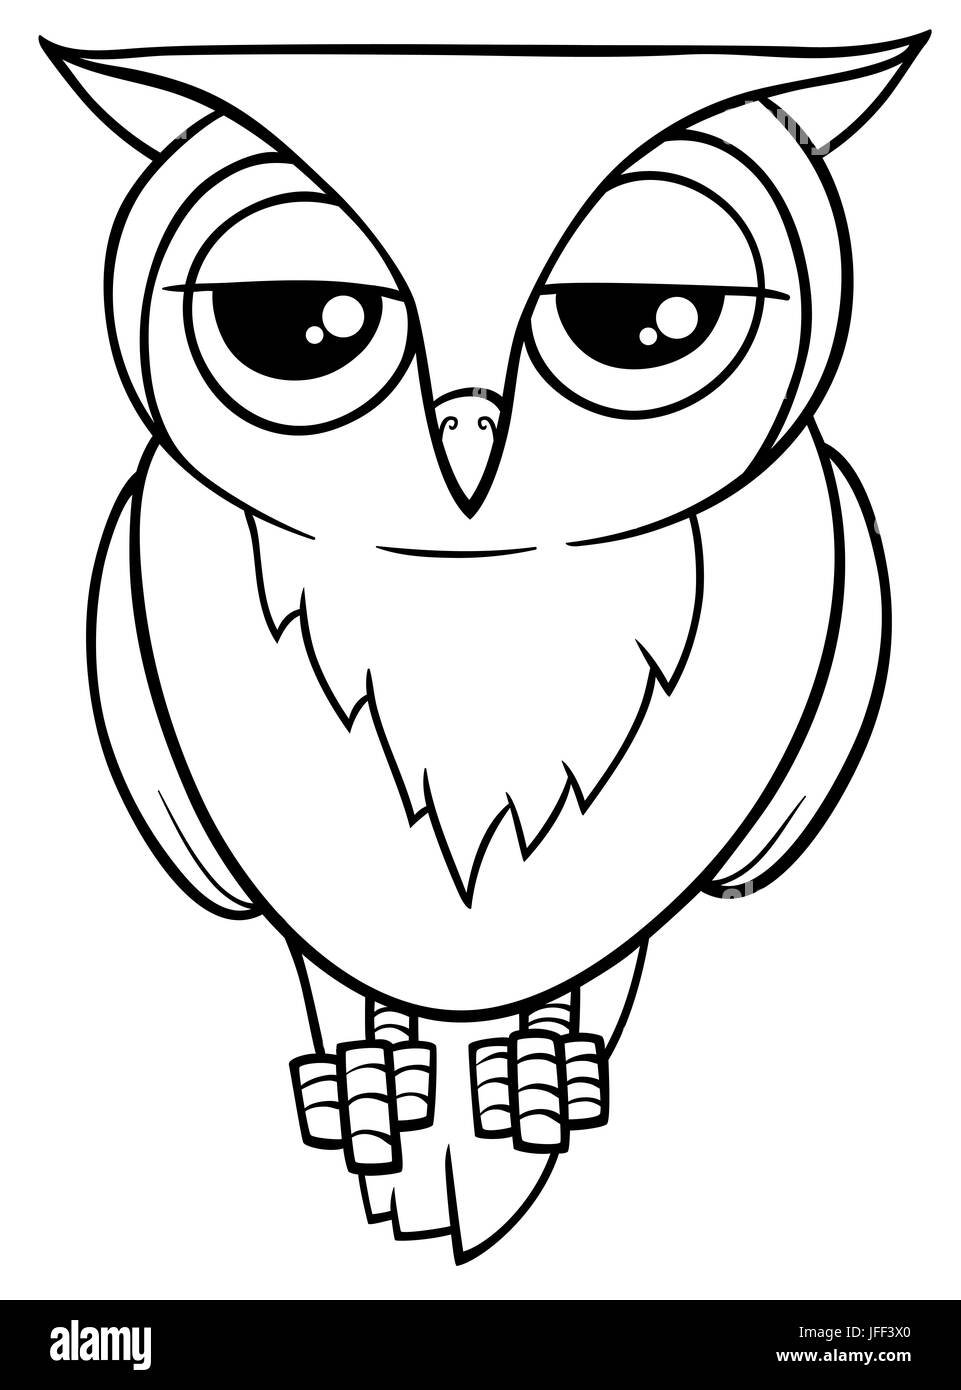 funny owl coloring page Stock Photo: 147235144 - Alamy